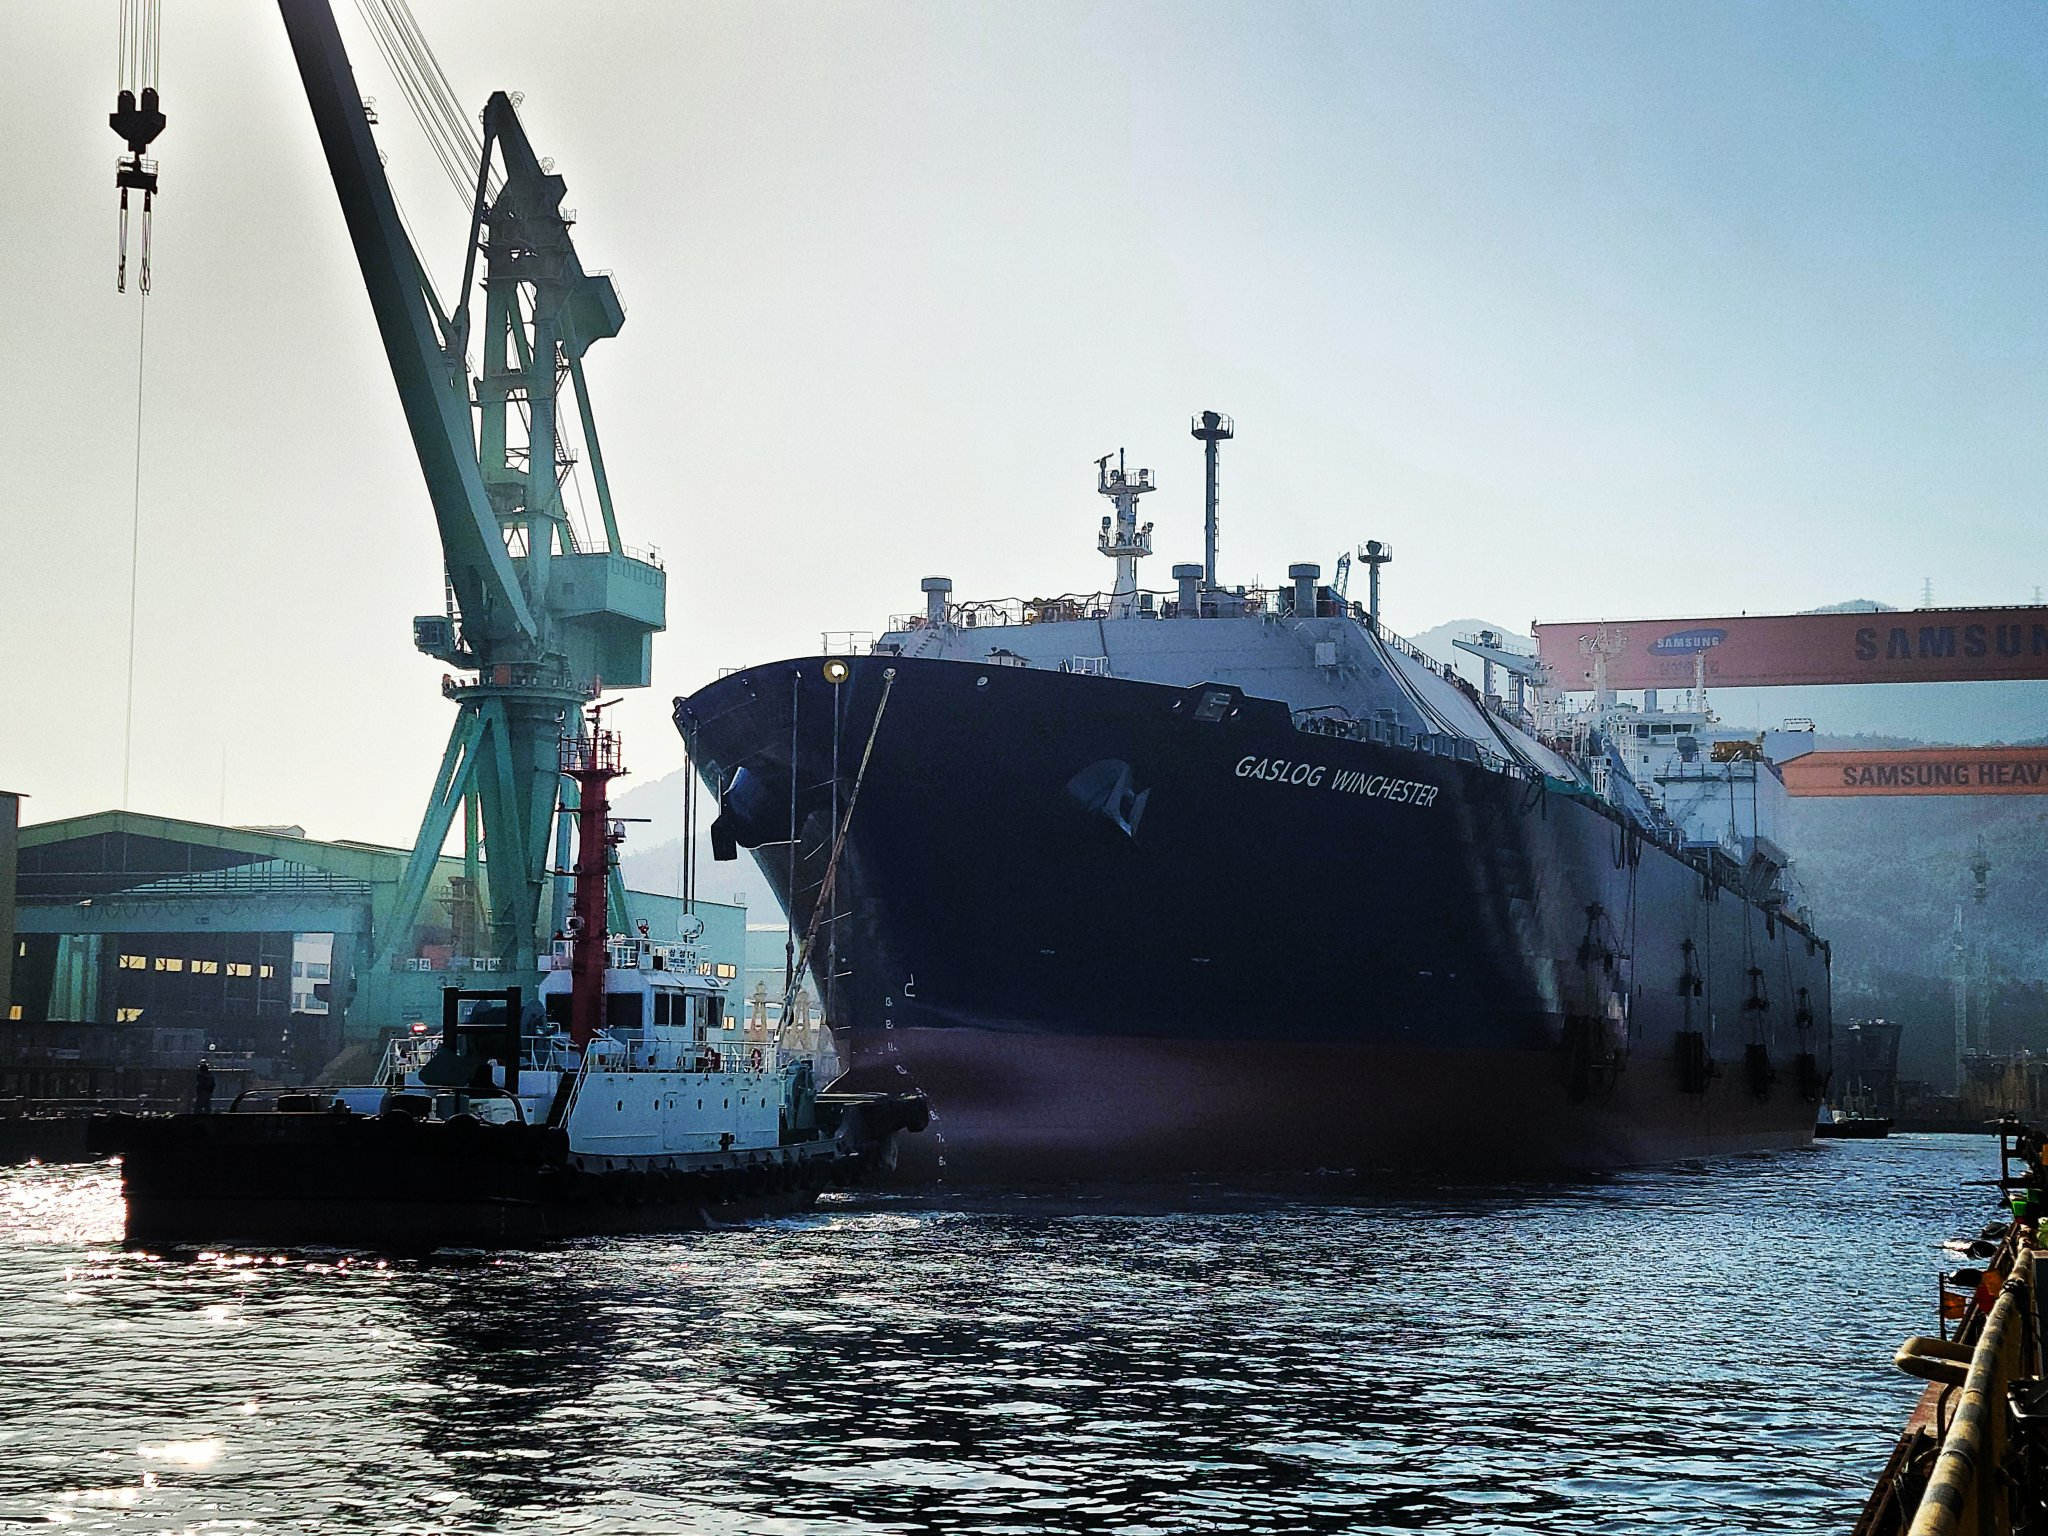 Samsung Heavy launches GasLog's LNG carrier newbuild